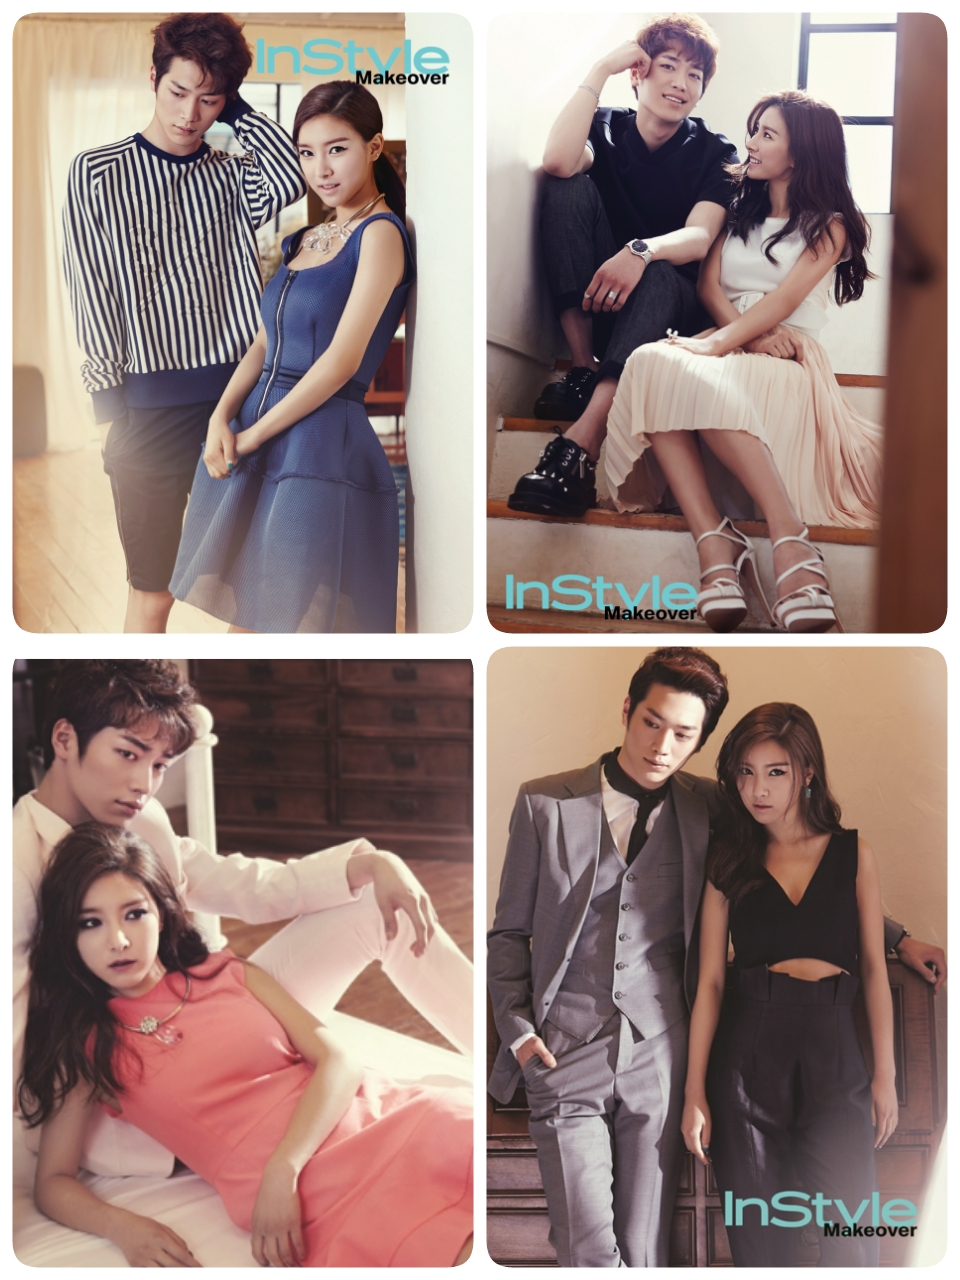 Seo Kang Joon and Kim So Eun - InStyle Magazine Ju1